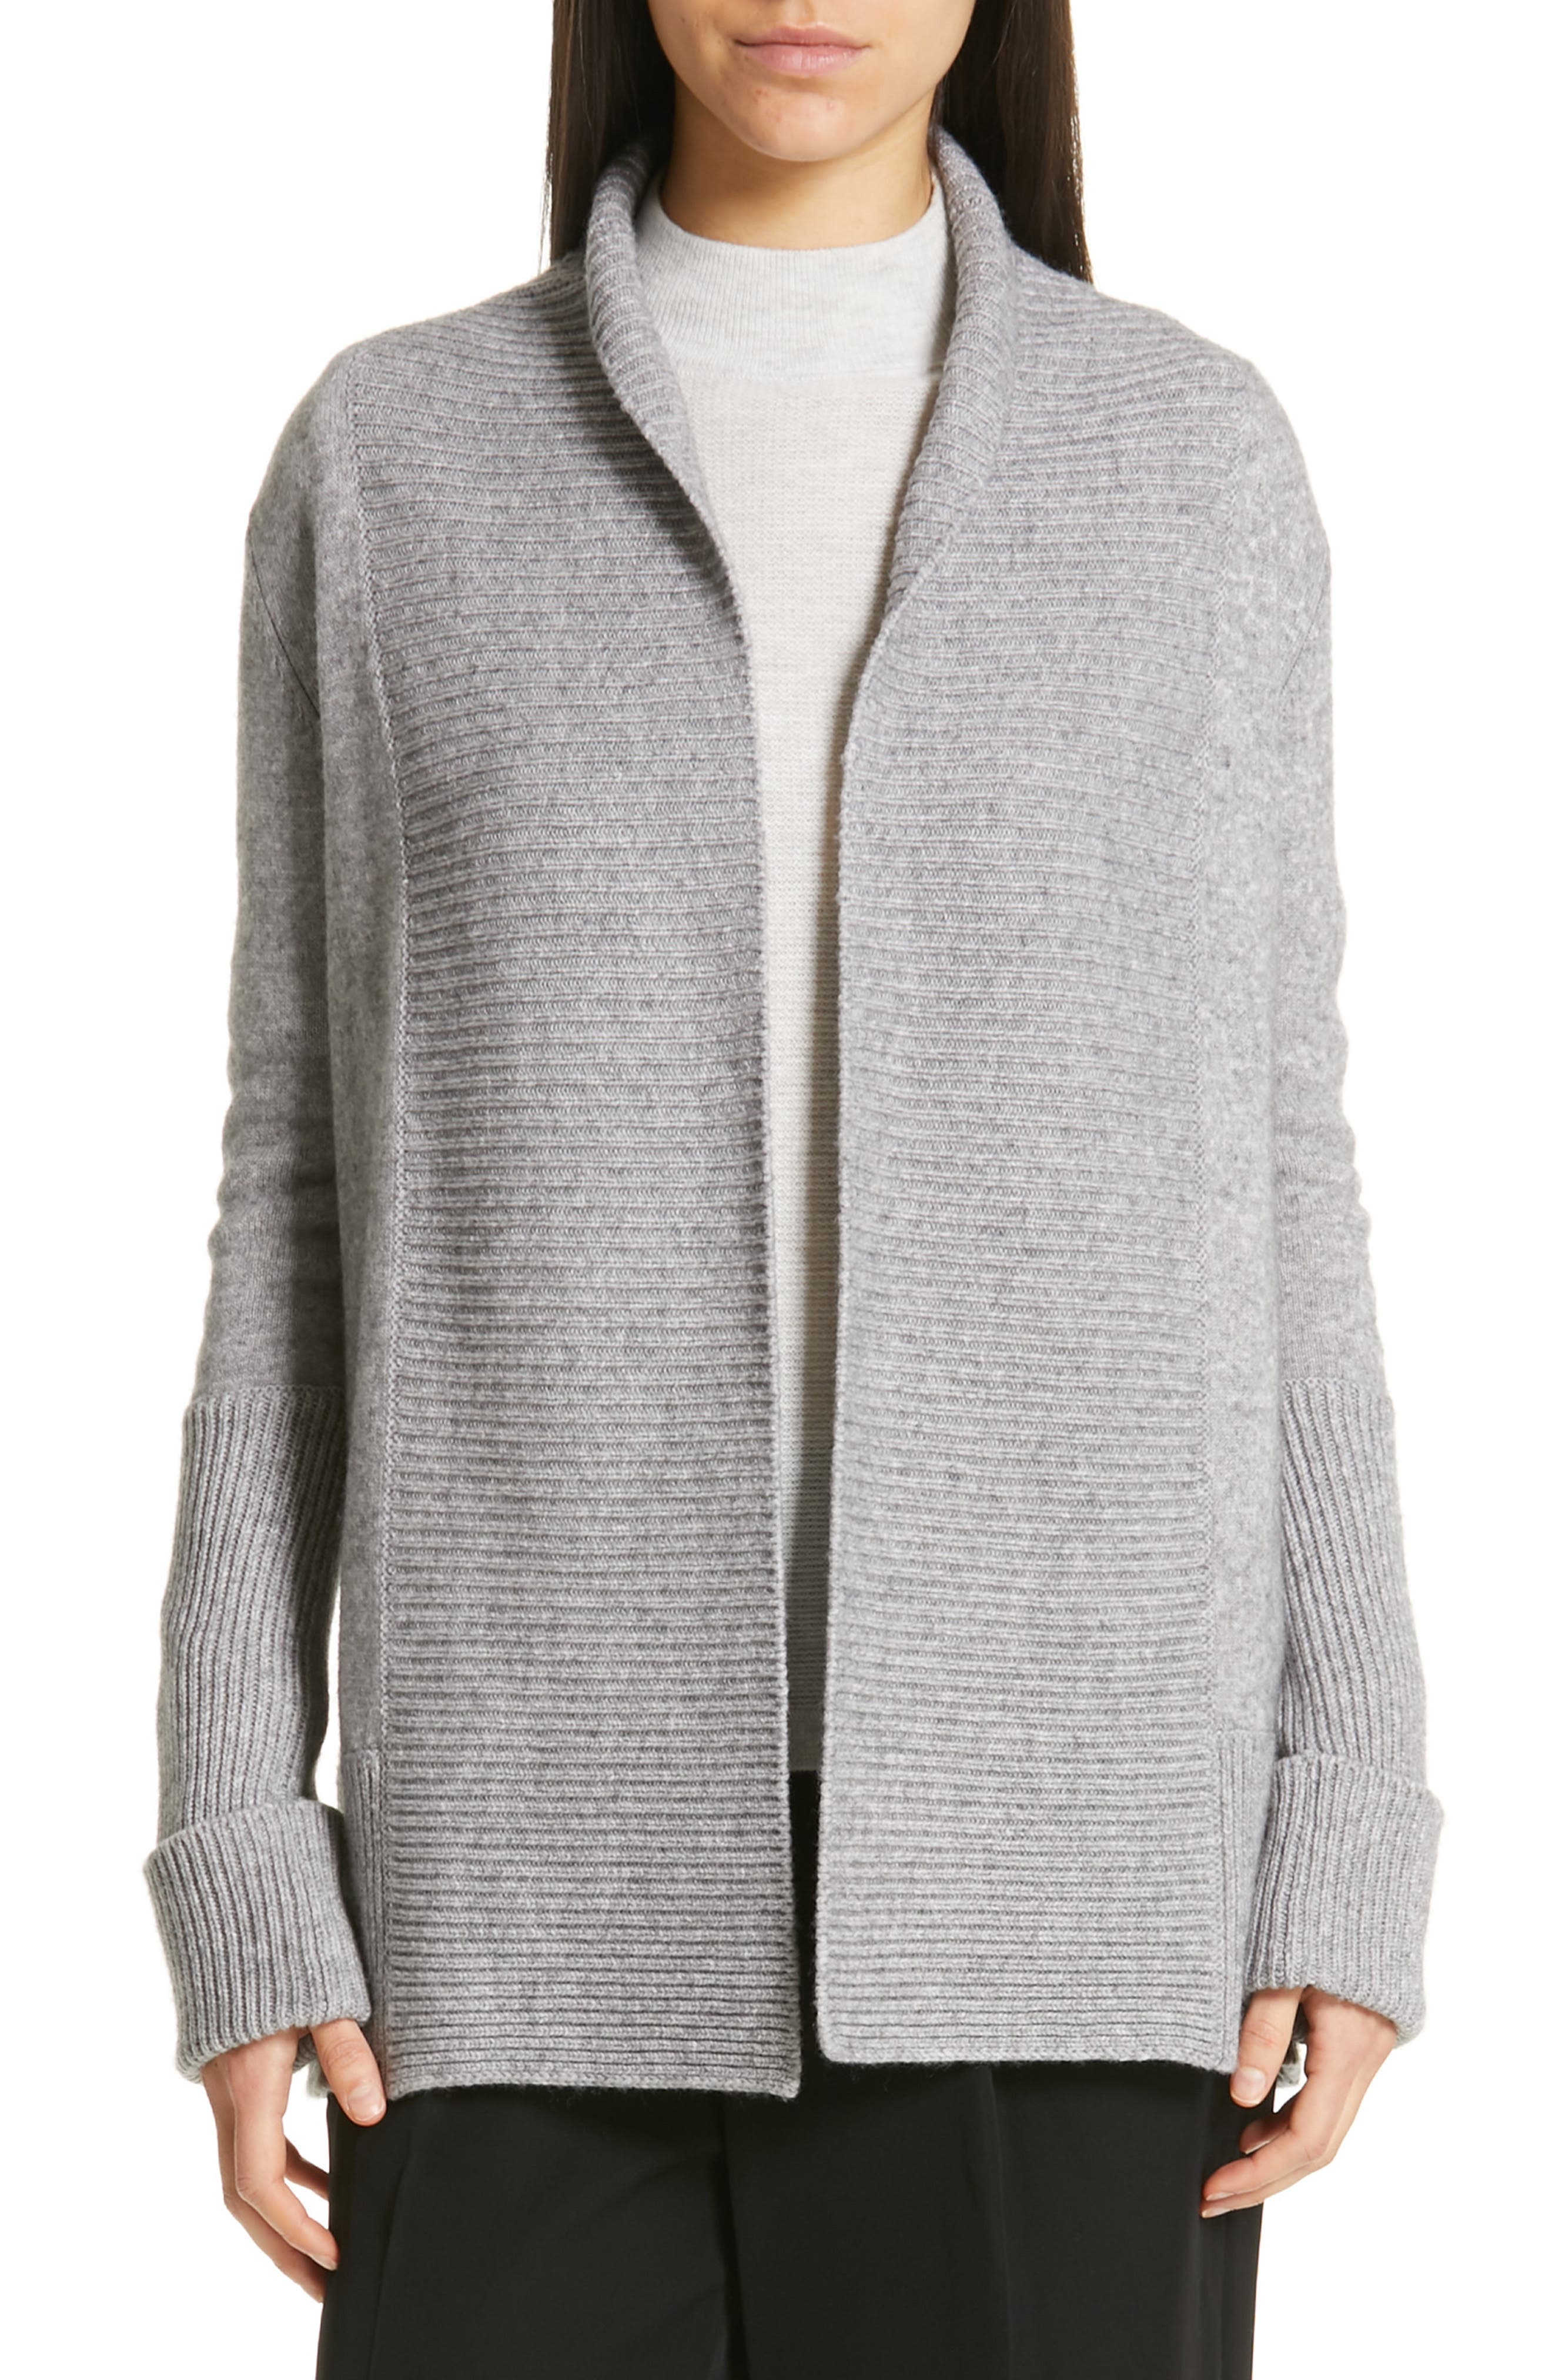 VINCE, Wool & Cashmere Cardigan, Main thumbnail 1, color, H STEEL